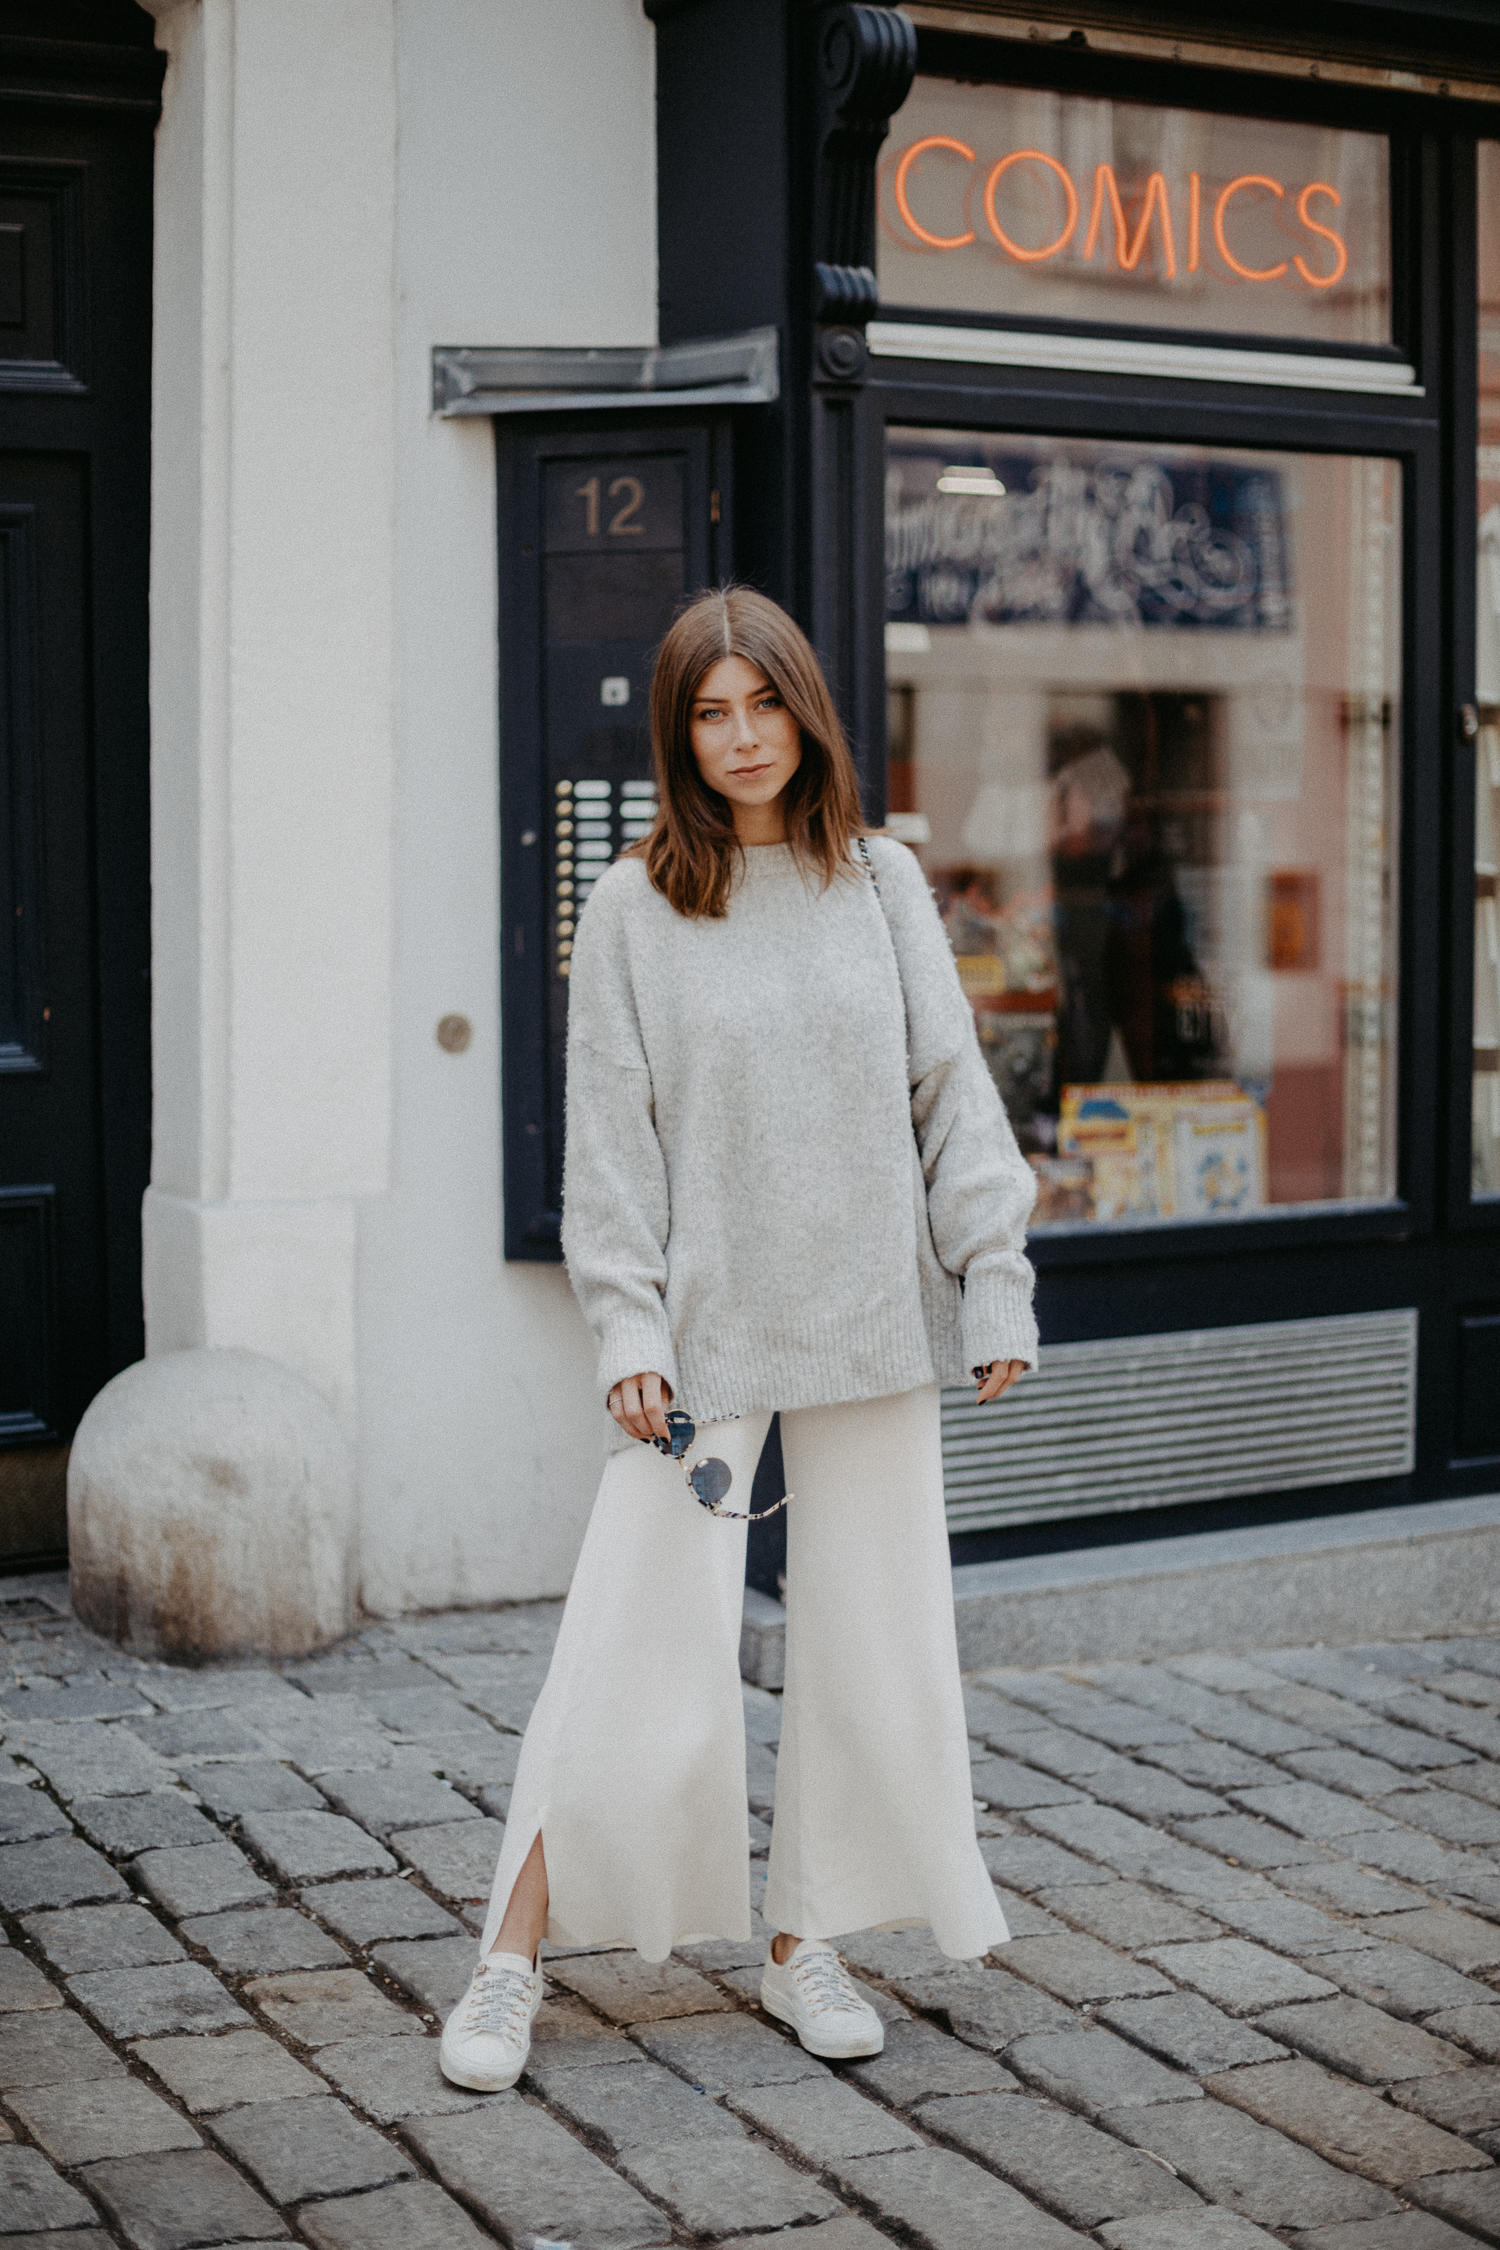 ZARA white sweat culottes | Bikinis & Passports